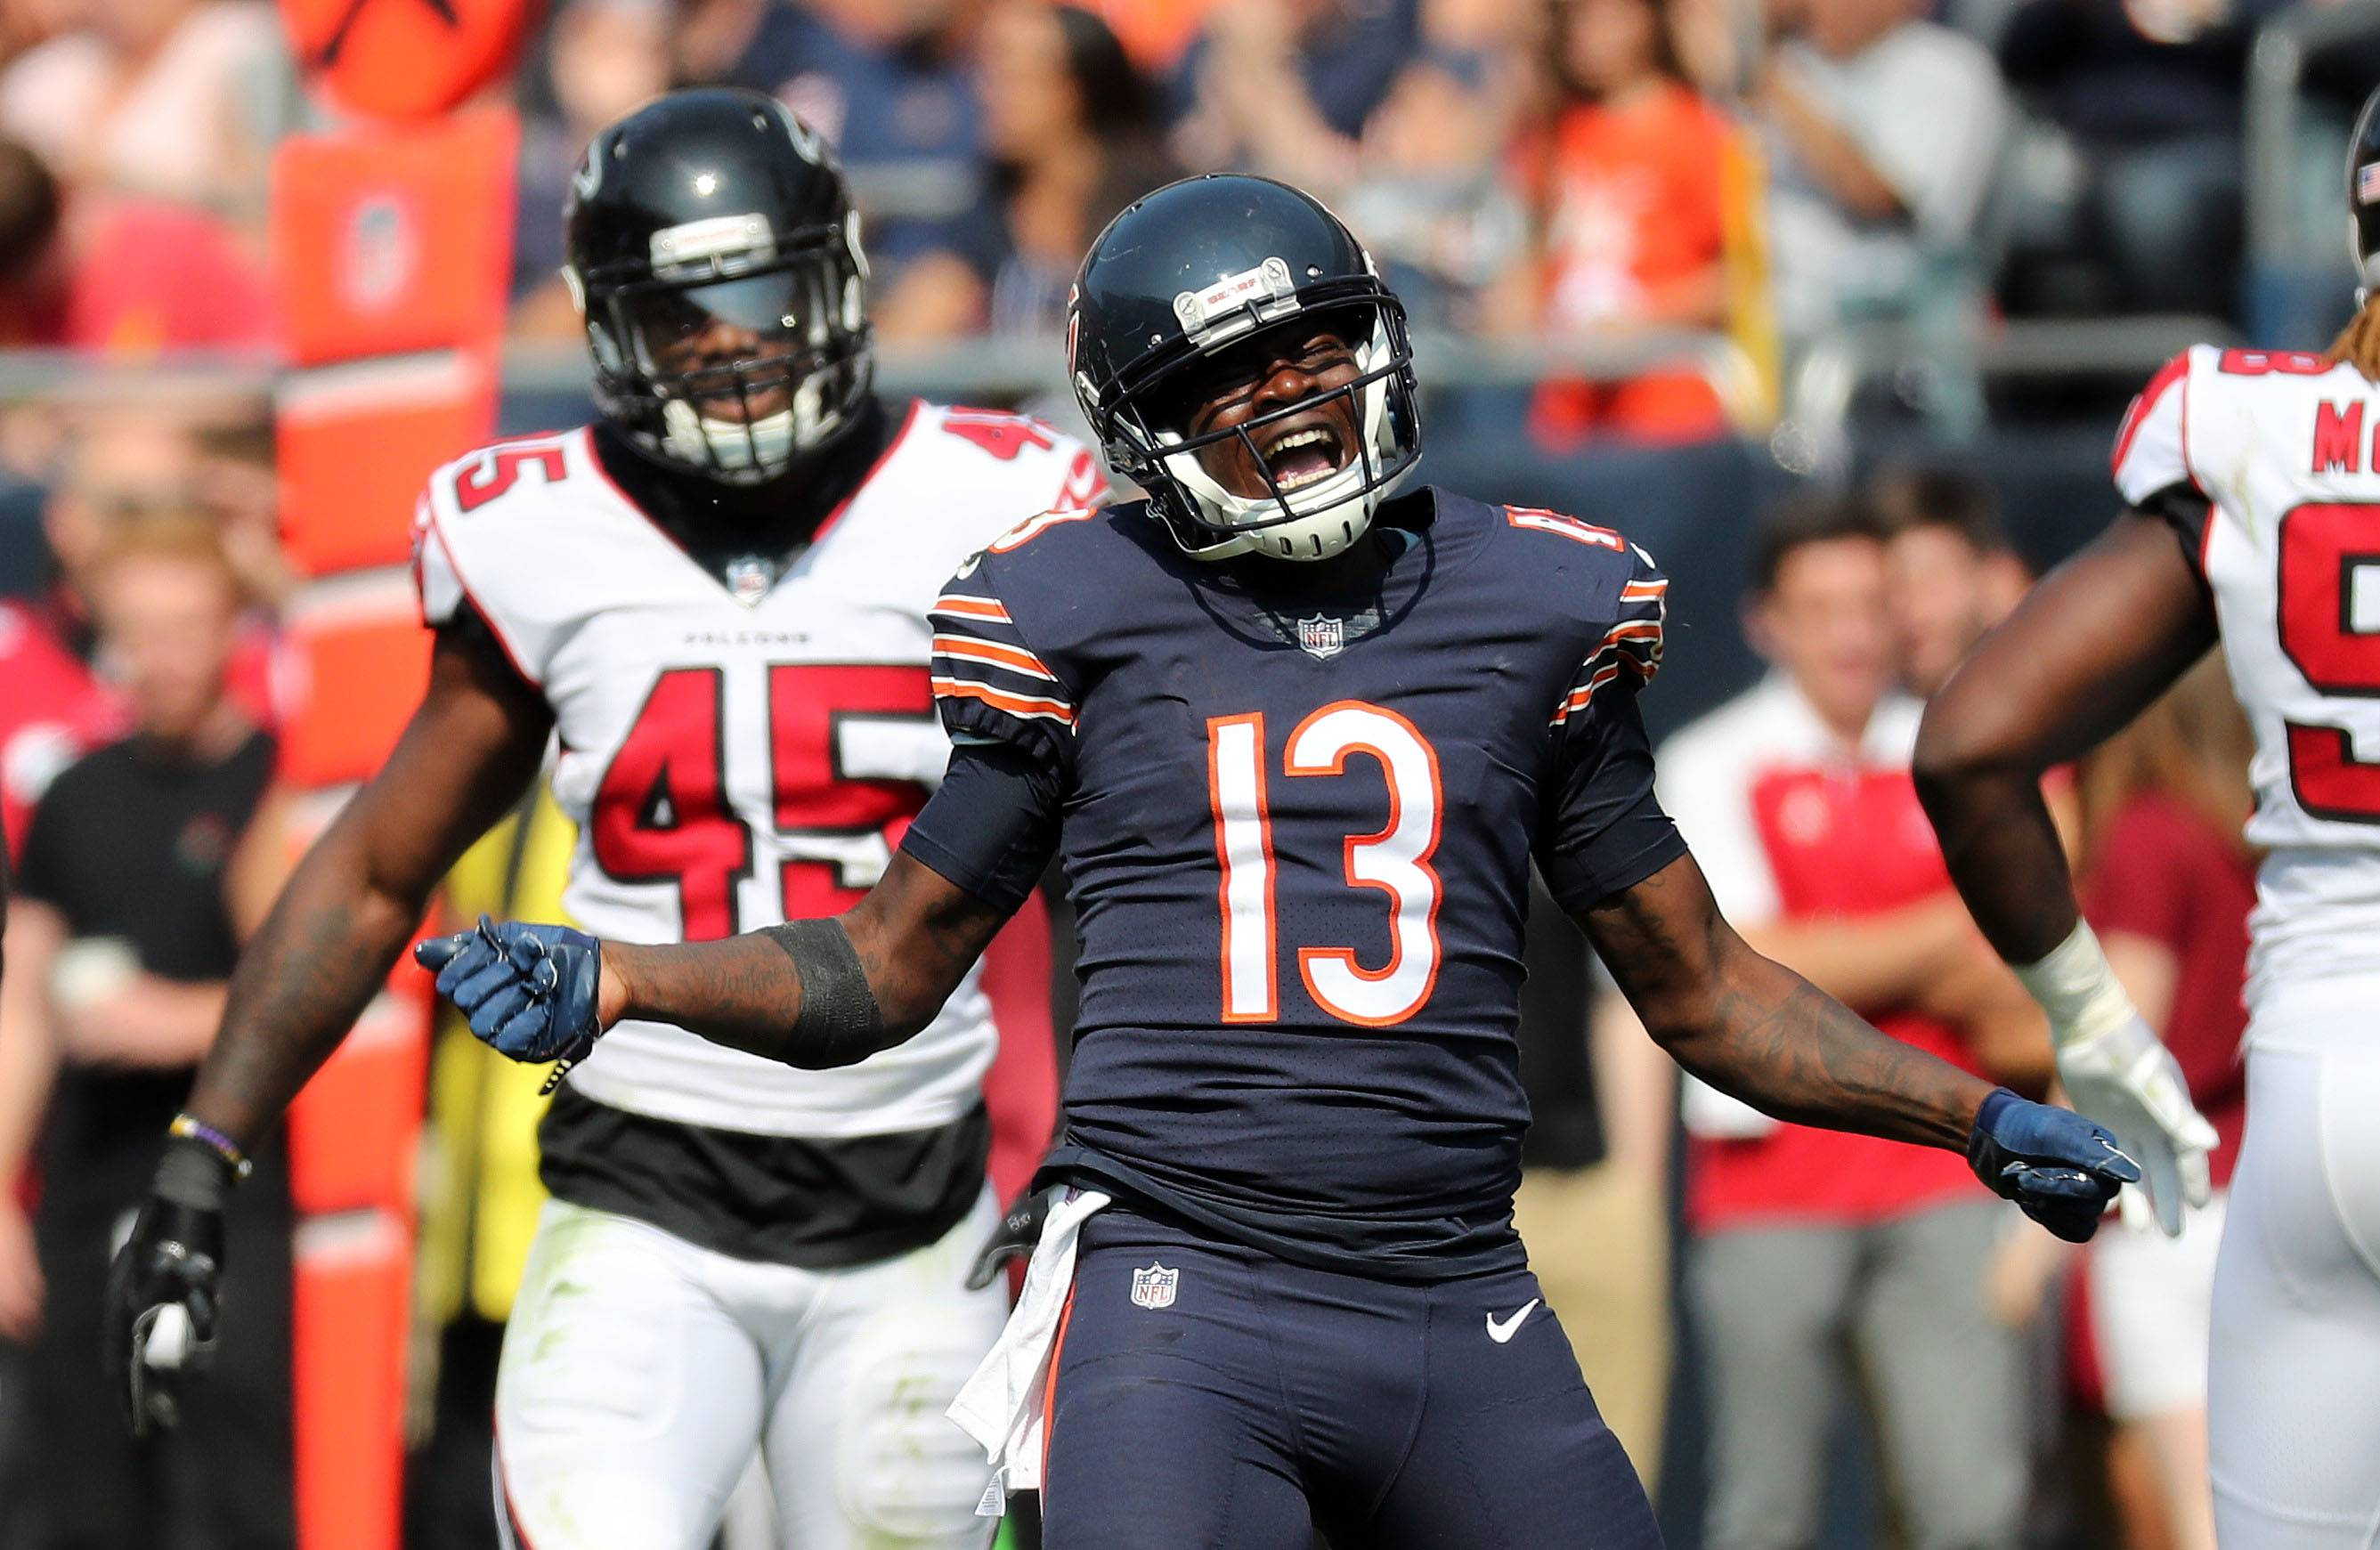 Chicago Bears wide receiver Kendall Wright celebrates after a catch during a game earlier this season at Soldier Field.